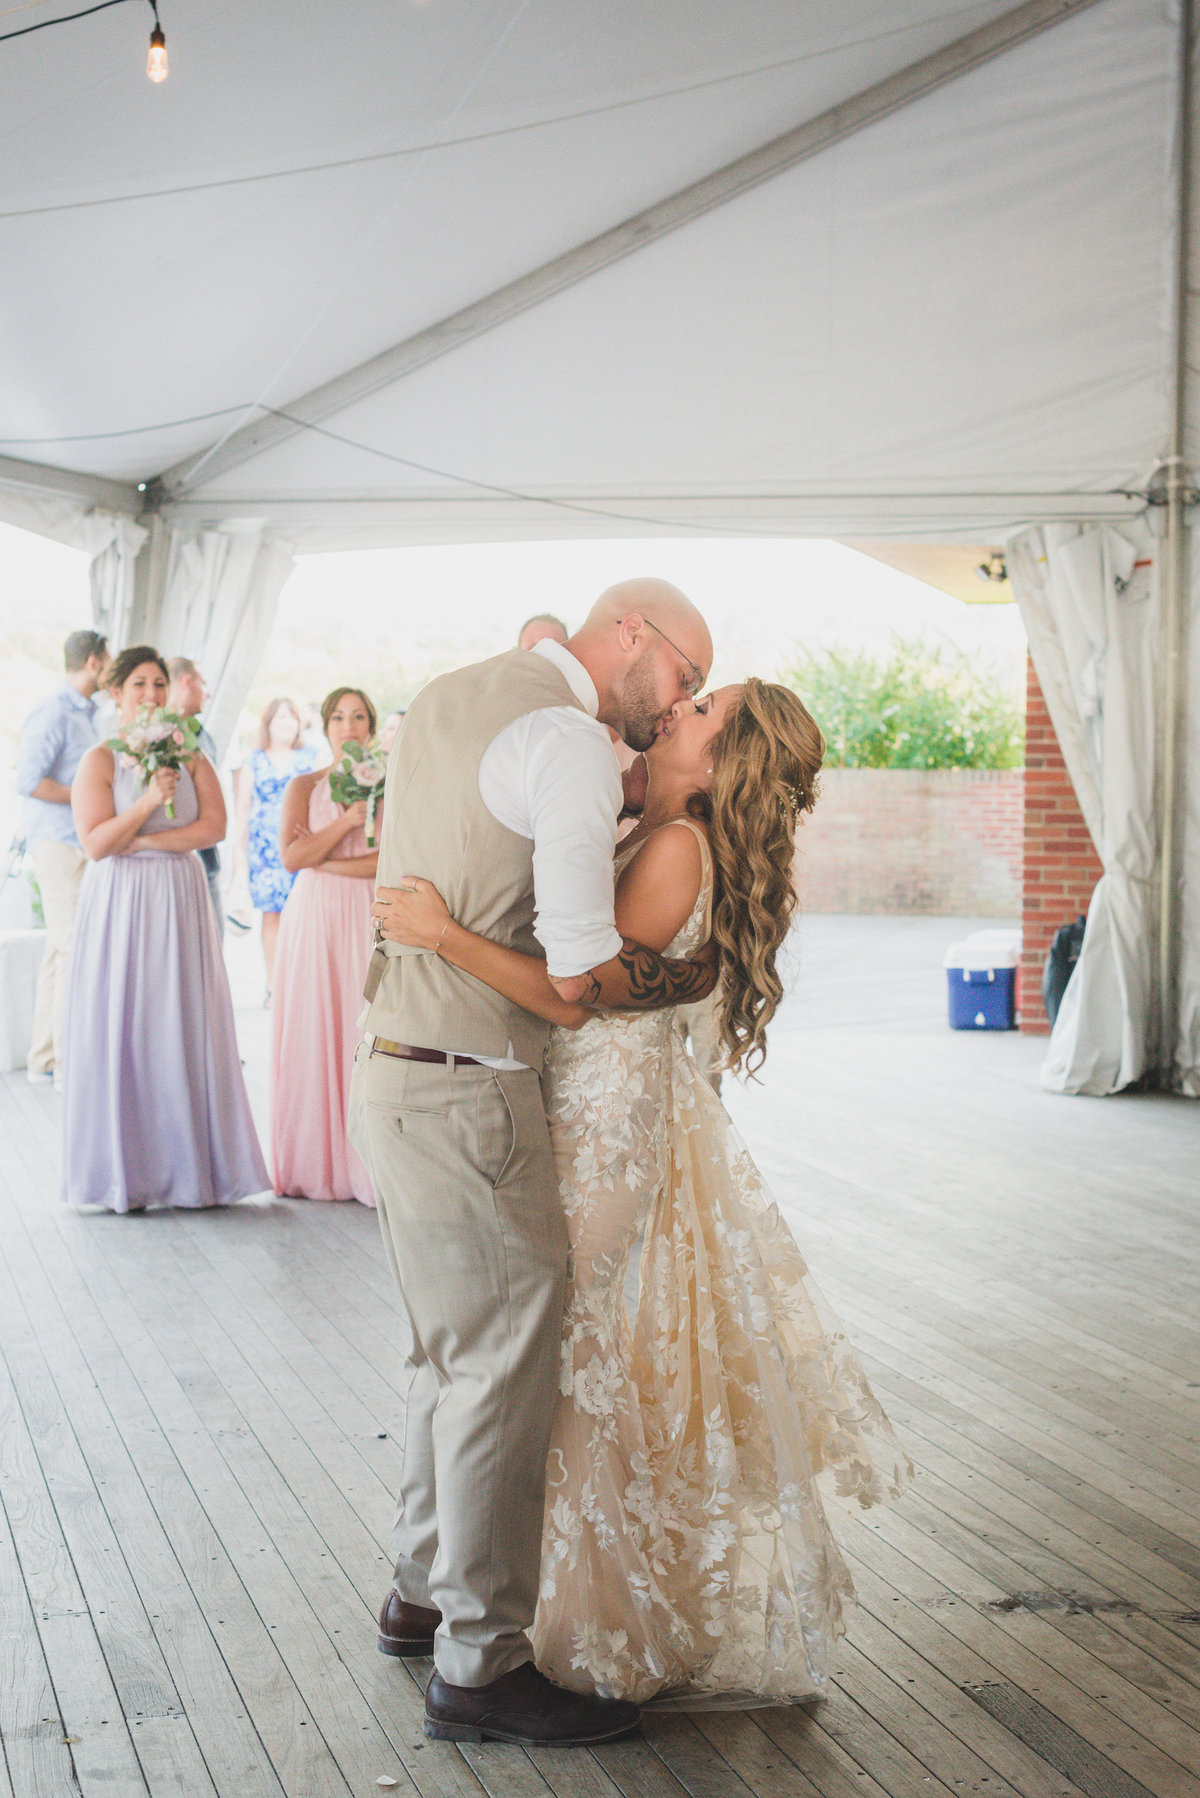 photo of bride and groom kissing on the dance floor during wedding reception at Pavilion at Sunken Meadow